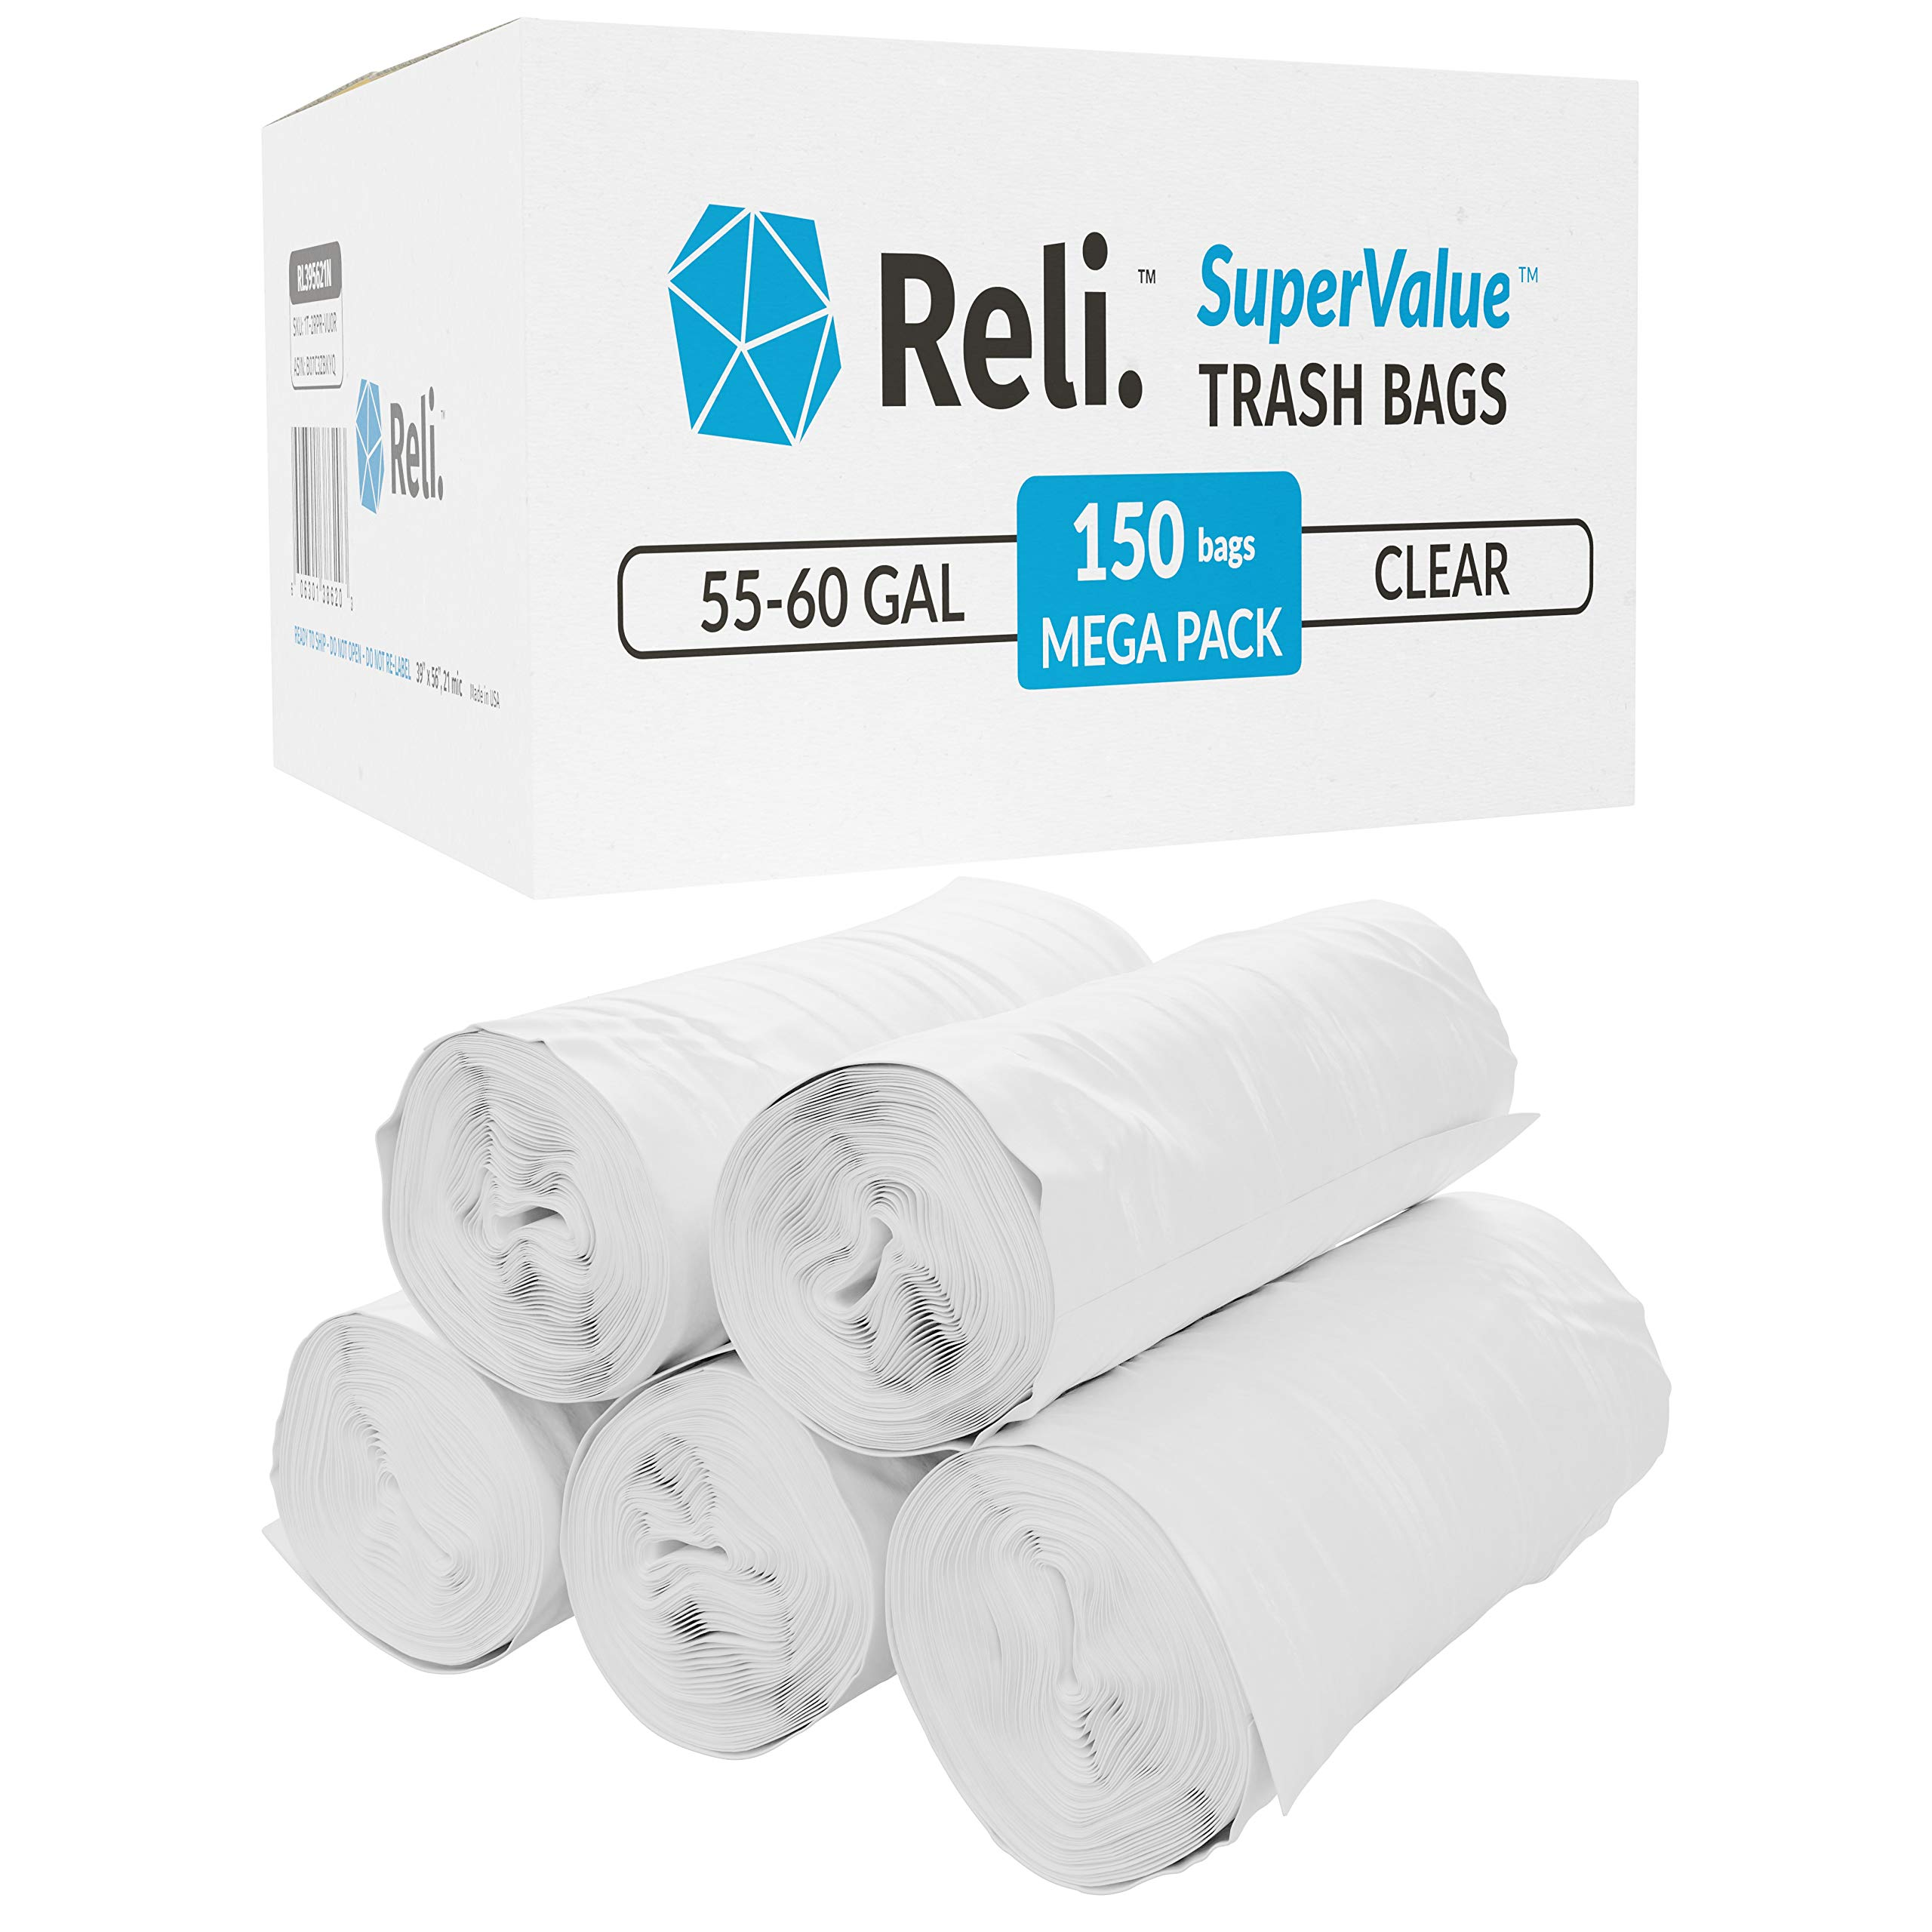 Reli. SuperValue 55 Gallon Trash Bags (150 Count Bulk) Clear Trash Bags Heavy Duty 55 Gallon - 60 Gallon - 55 Gal Contractor Garbage Bag Strength by Reli.